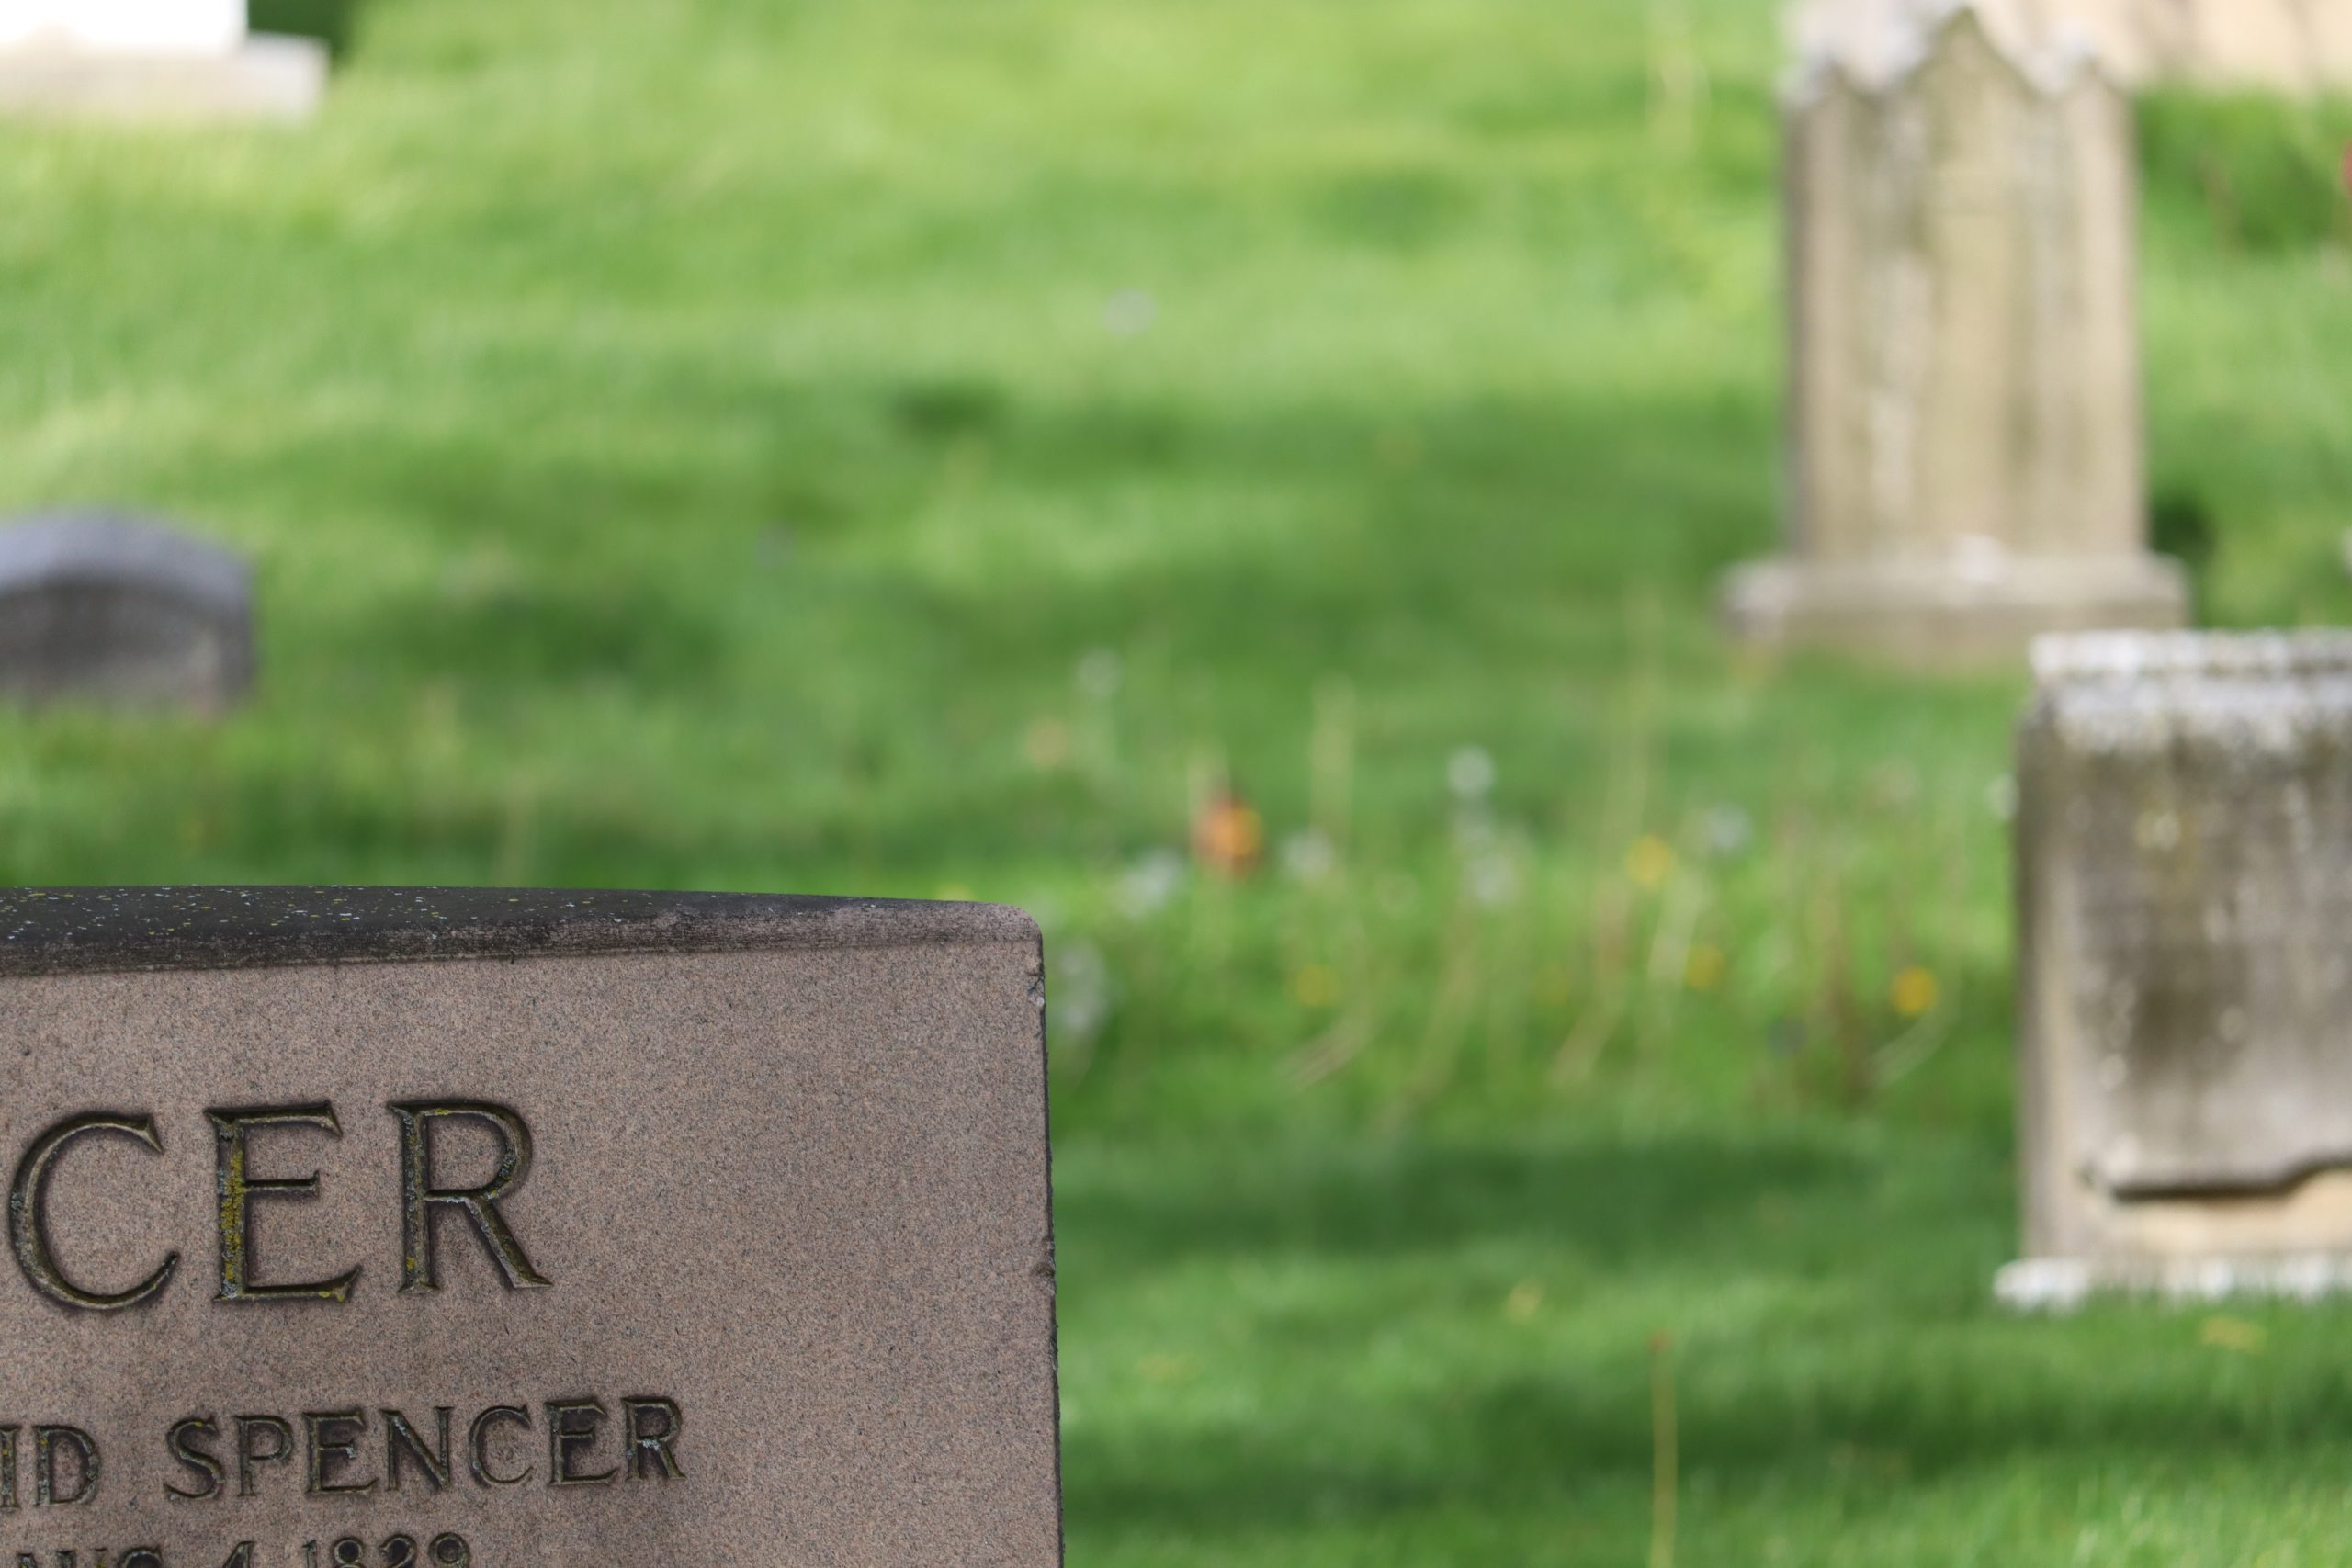 Another example of autofocus ruining the shot. Here the bird is blurry and the tombstone is in focus.